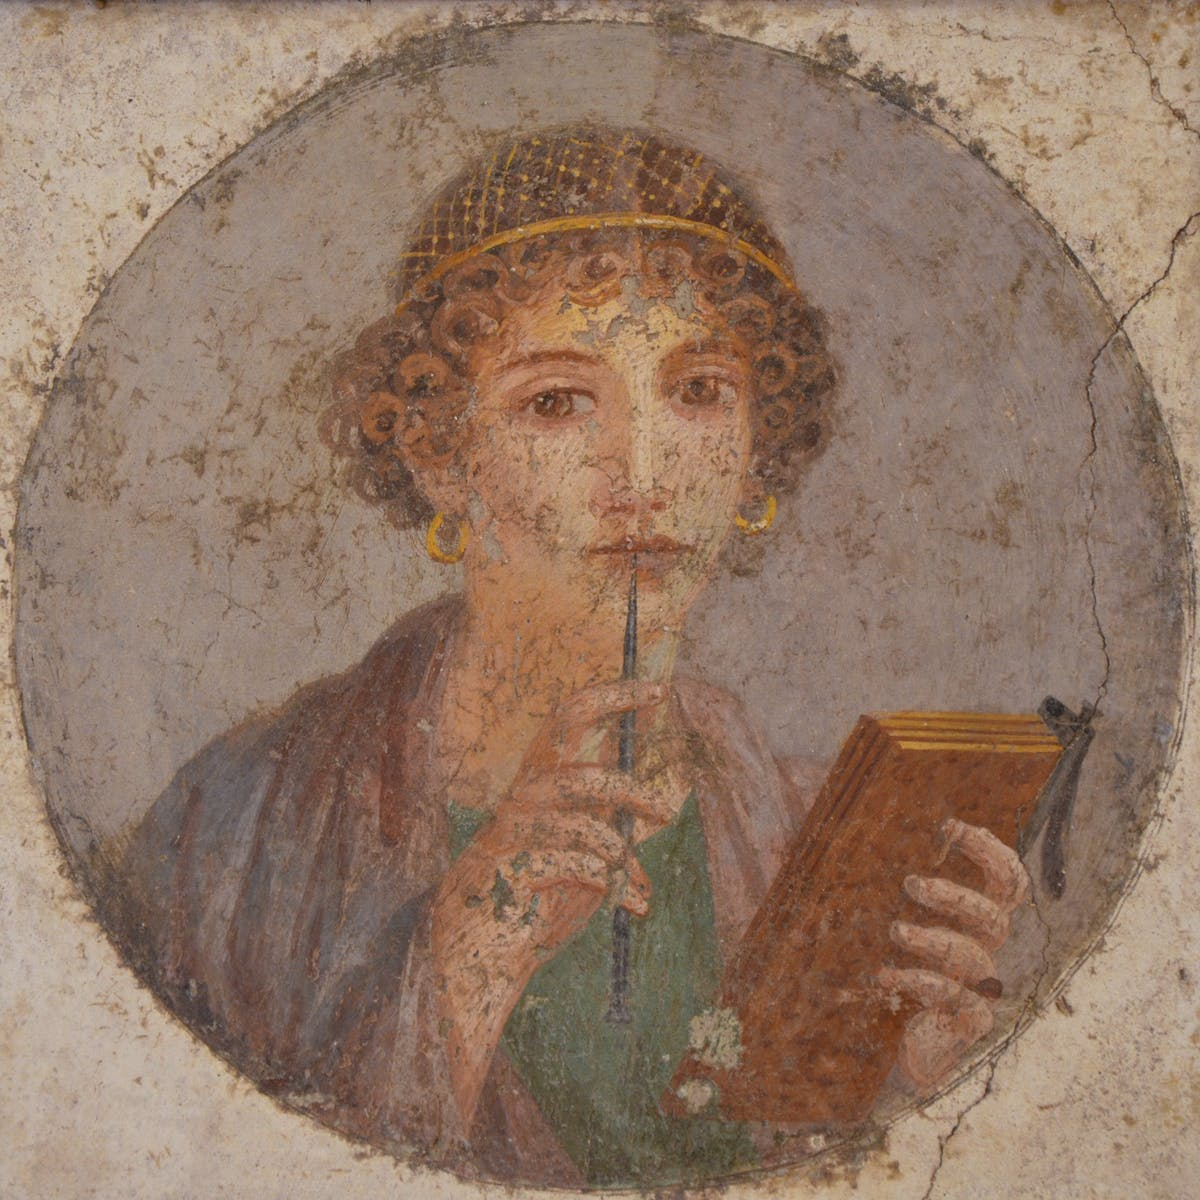 Guide to the classics: Sappho, a poet in fragments